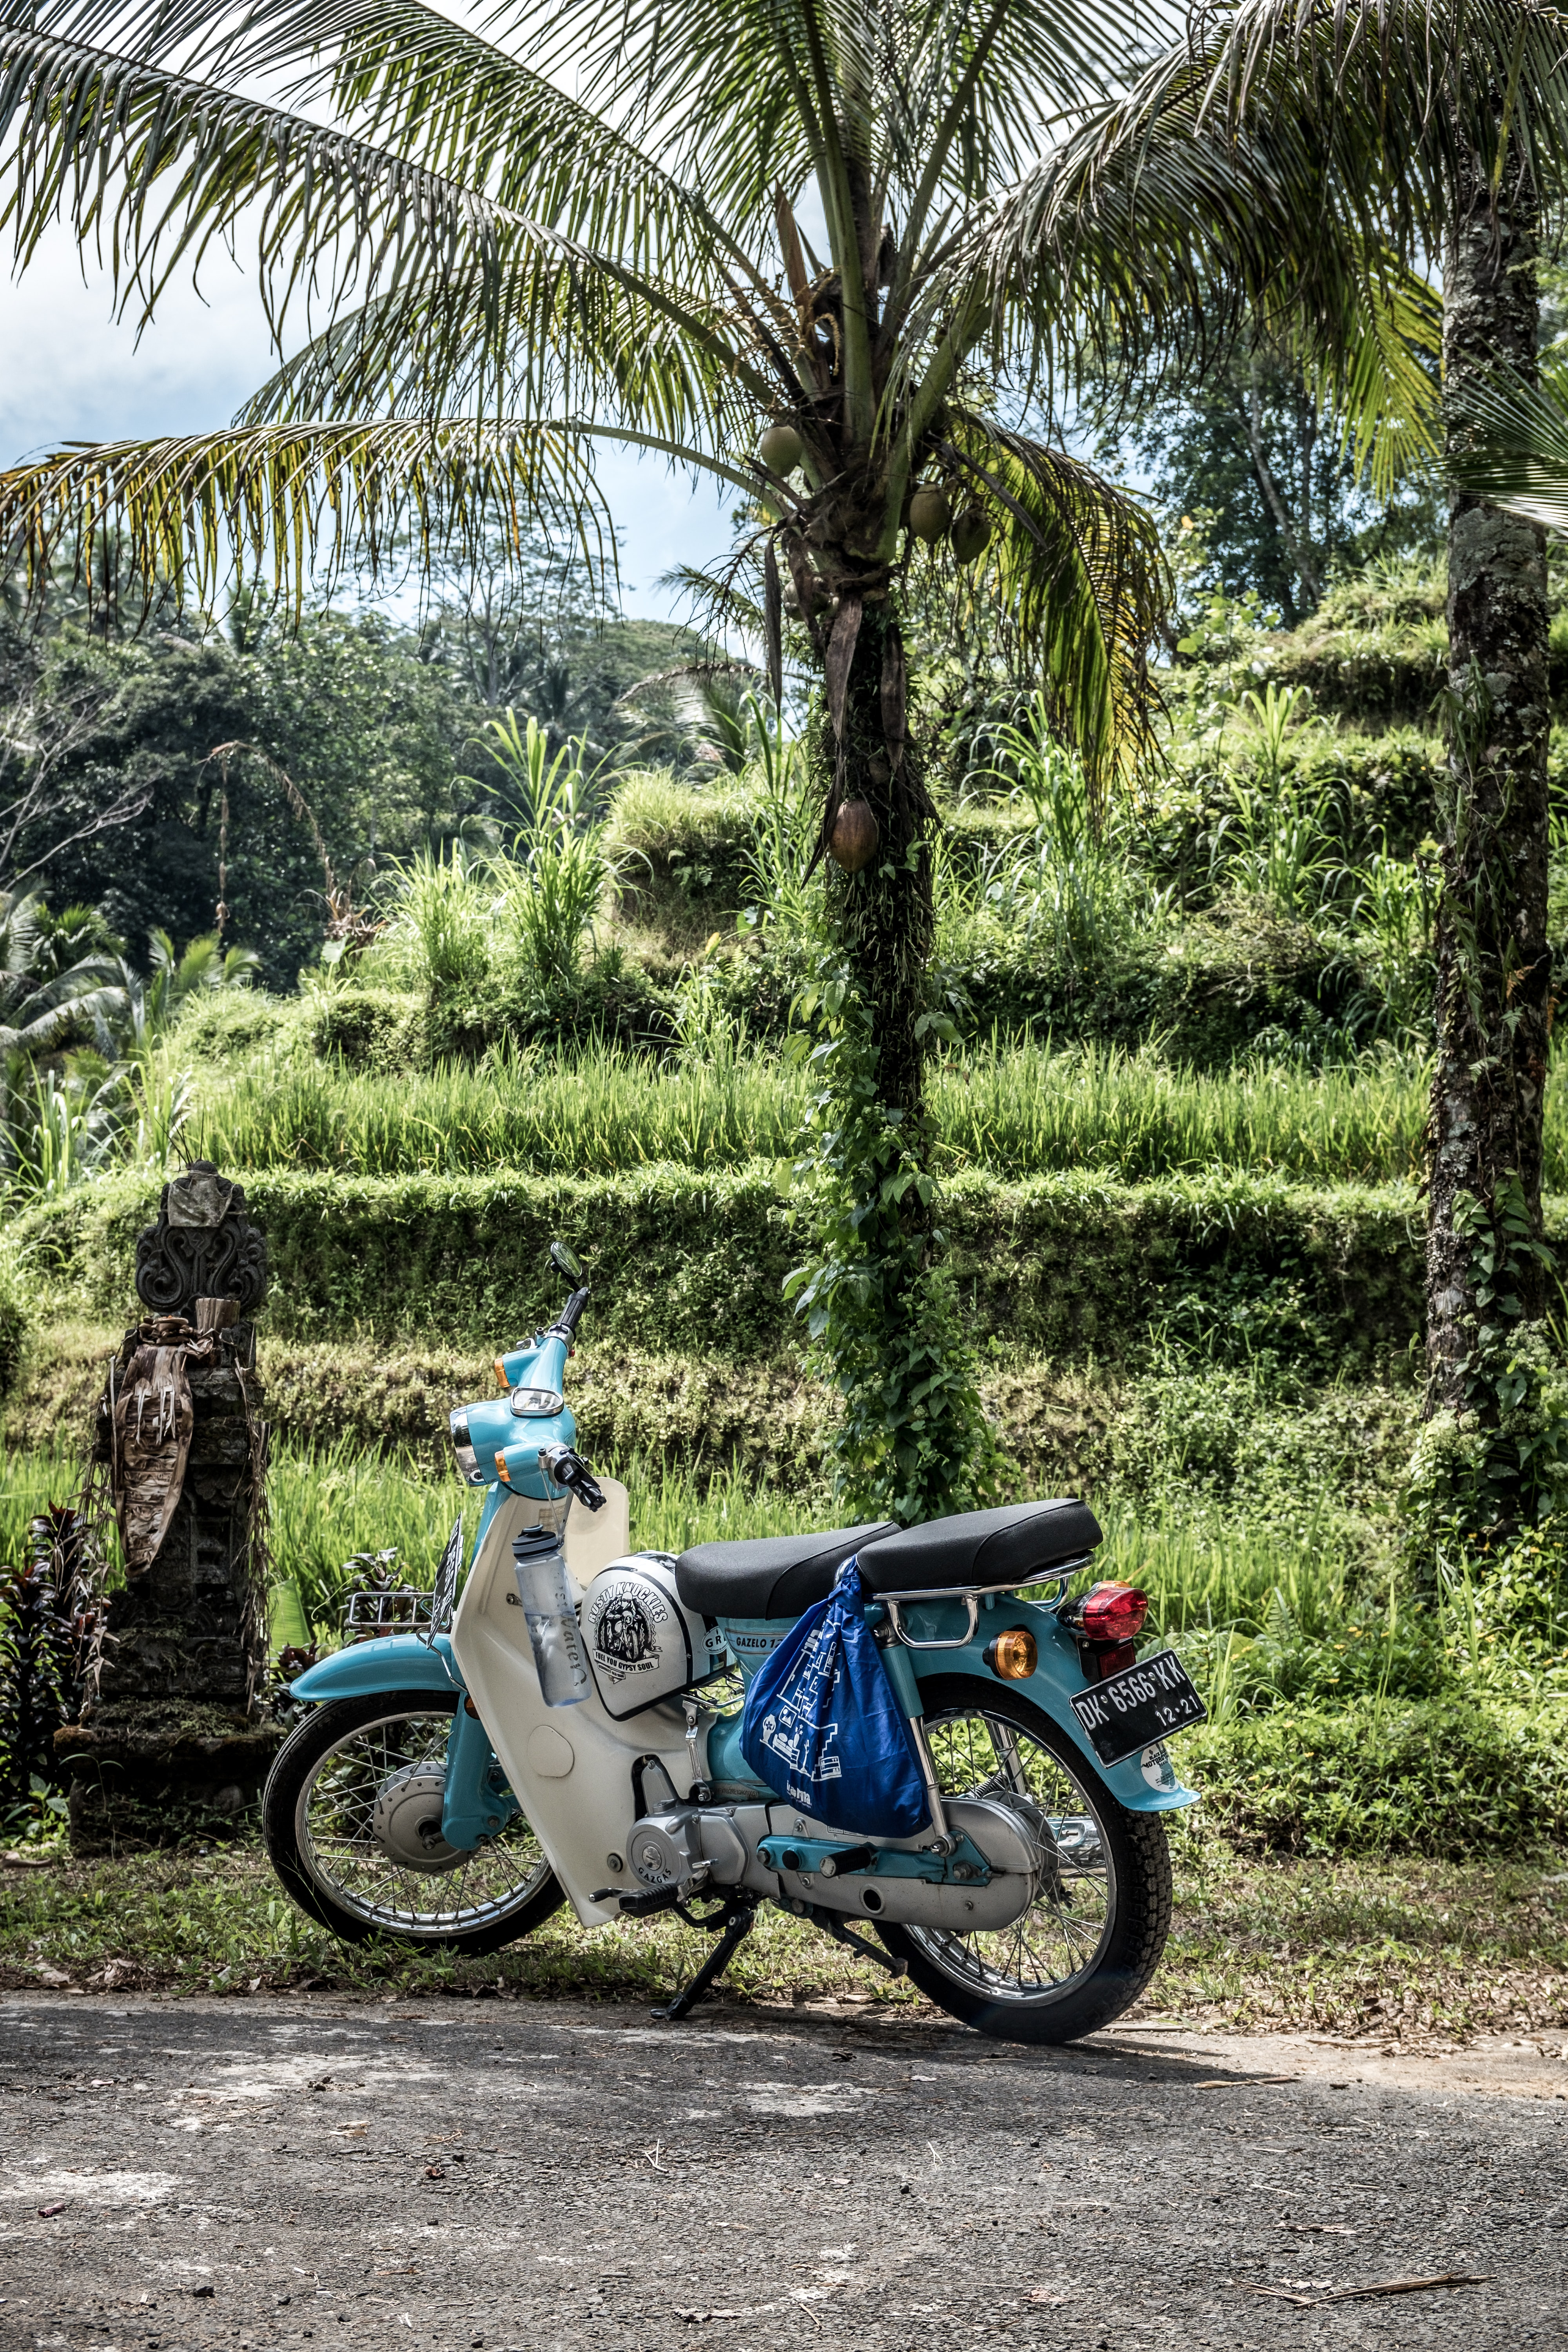 blue and white motorcycle parked under coconut tree